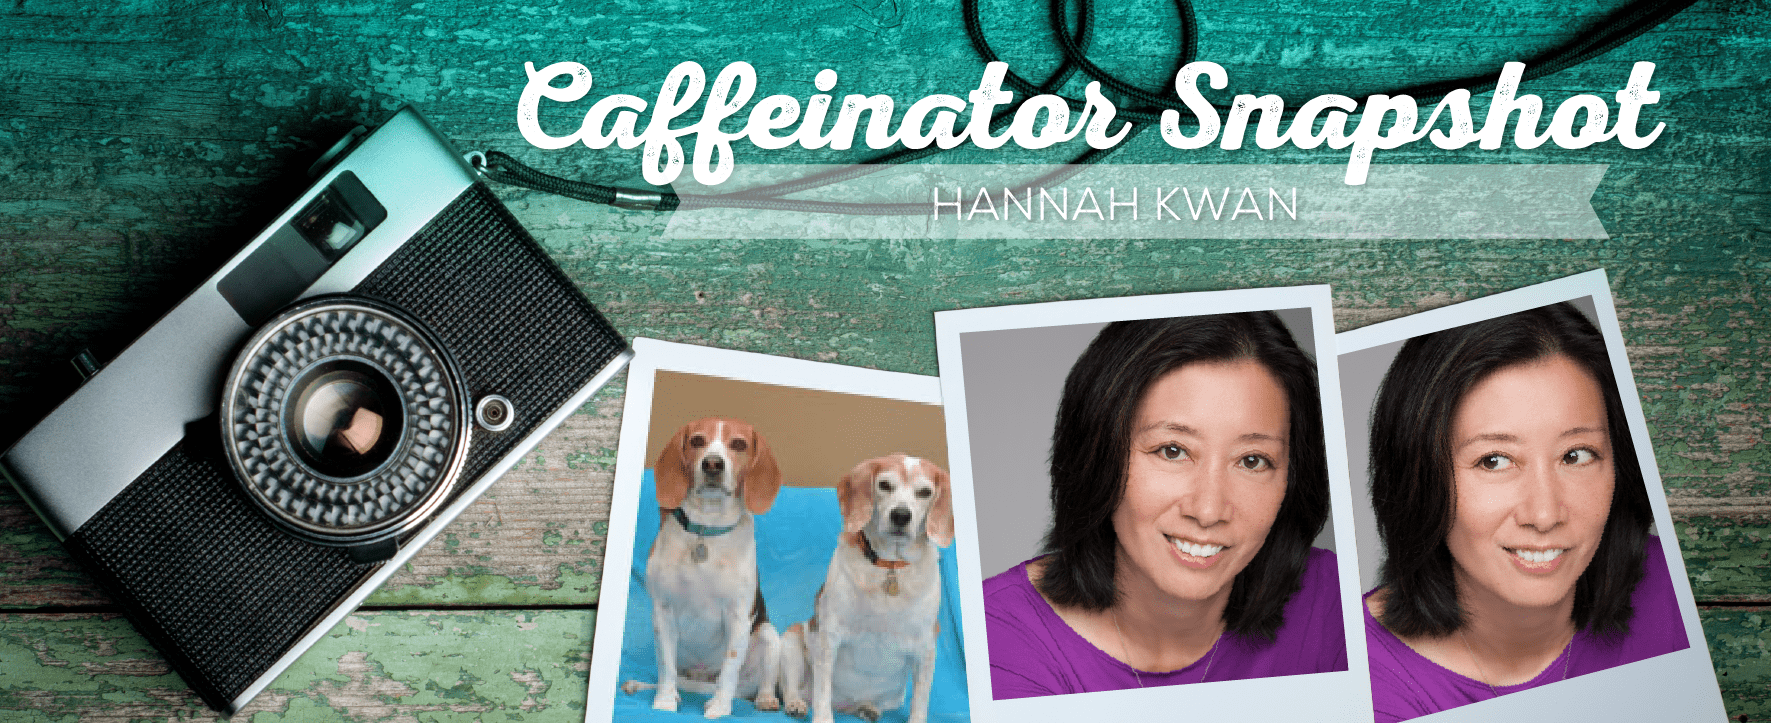 Meet Hannah Kwan Caffeinated developer